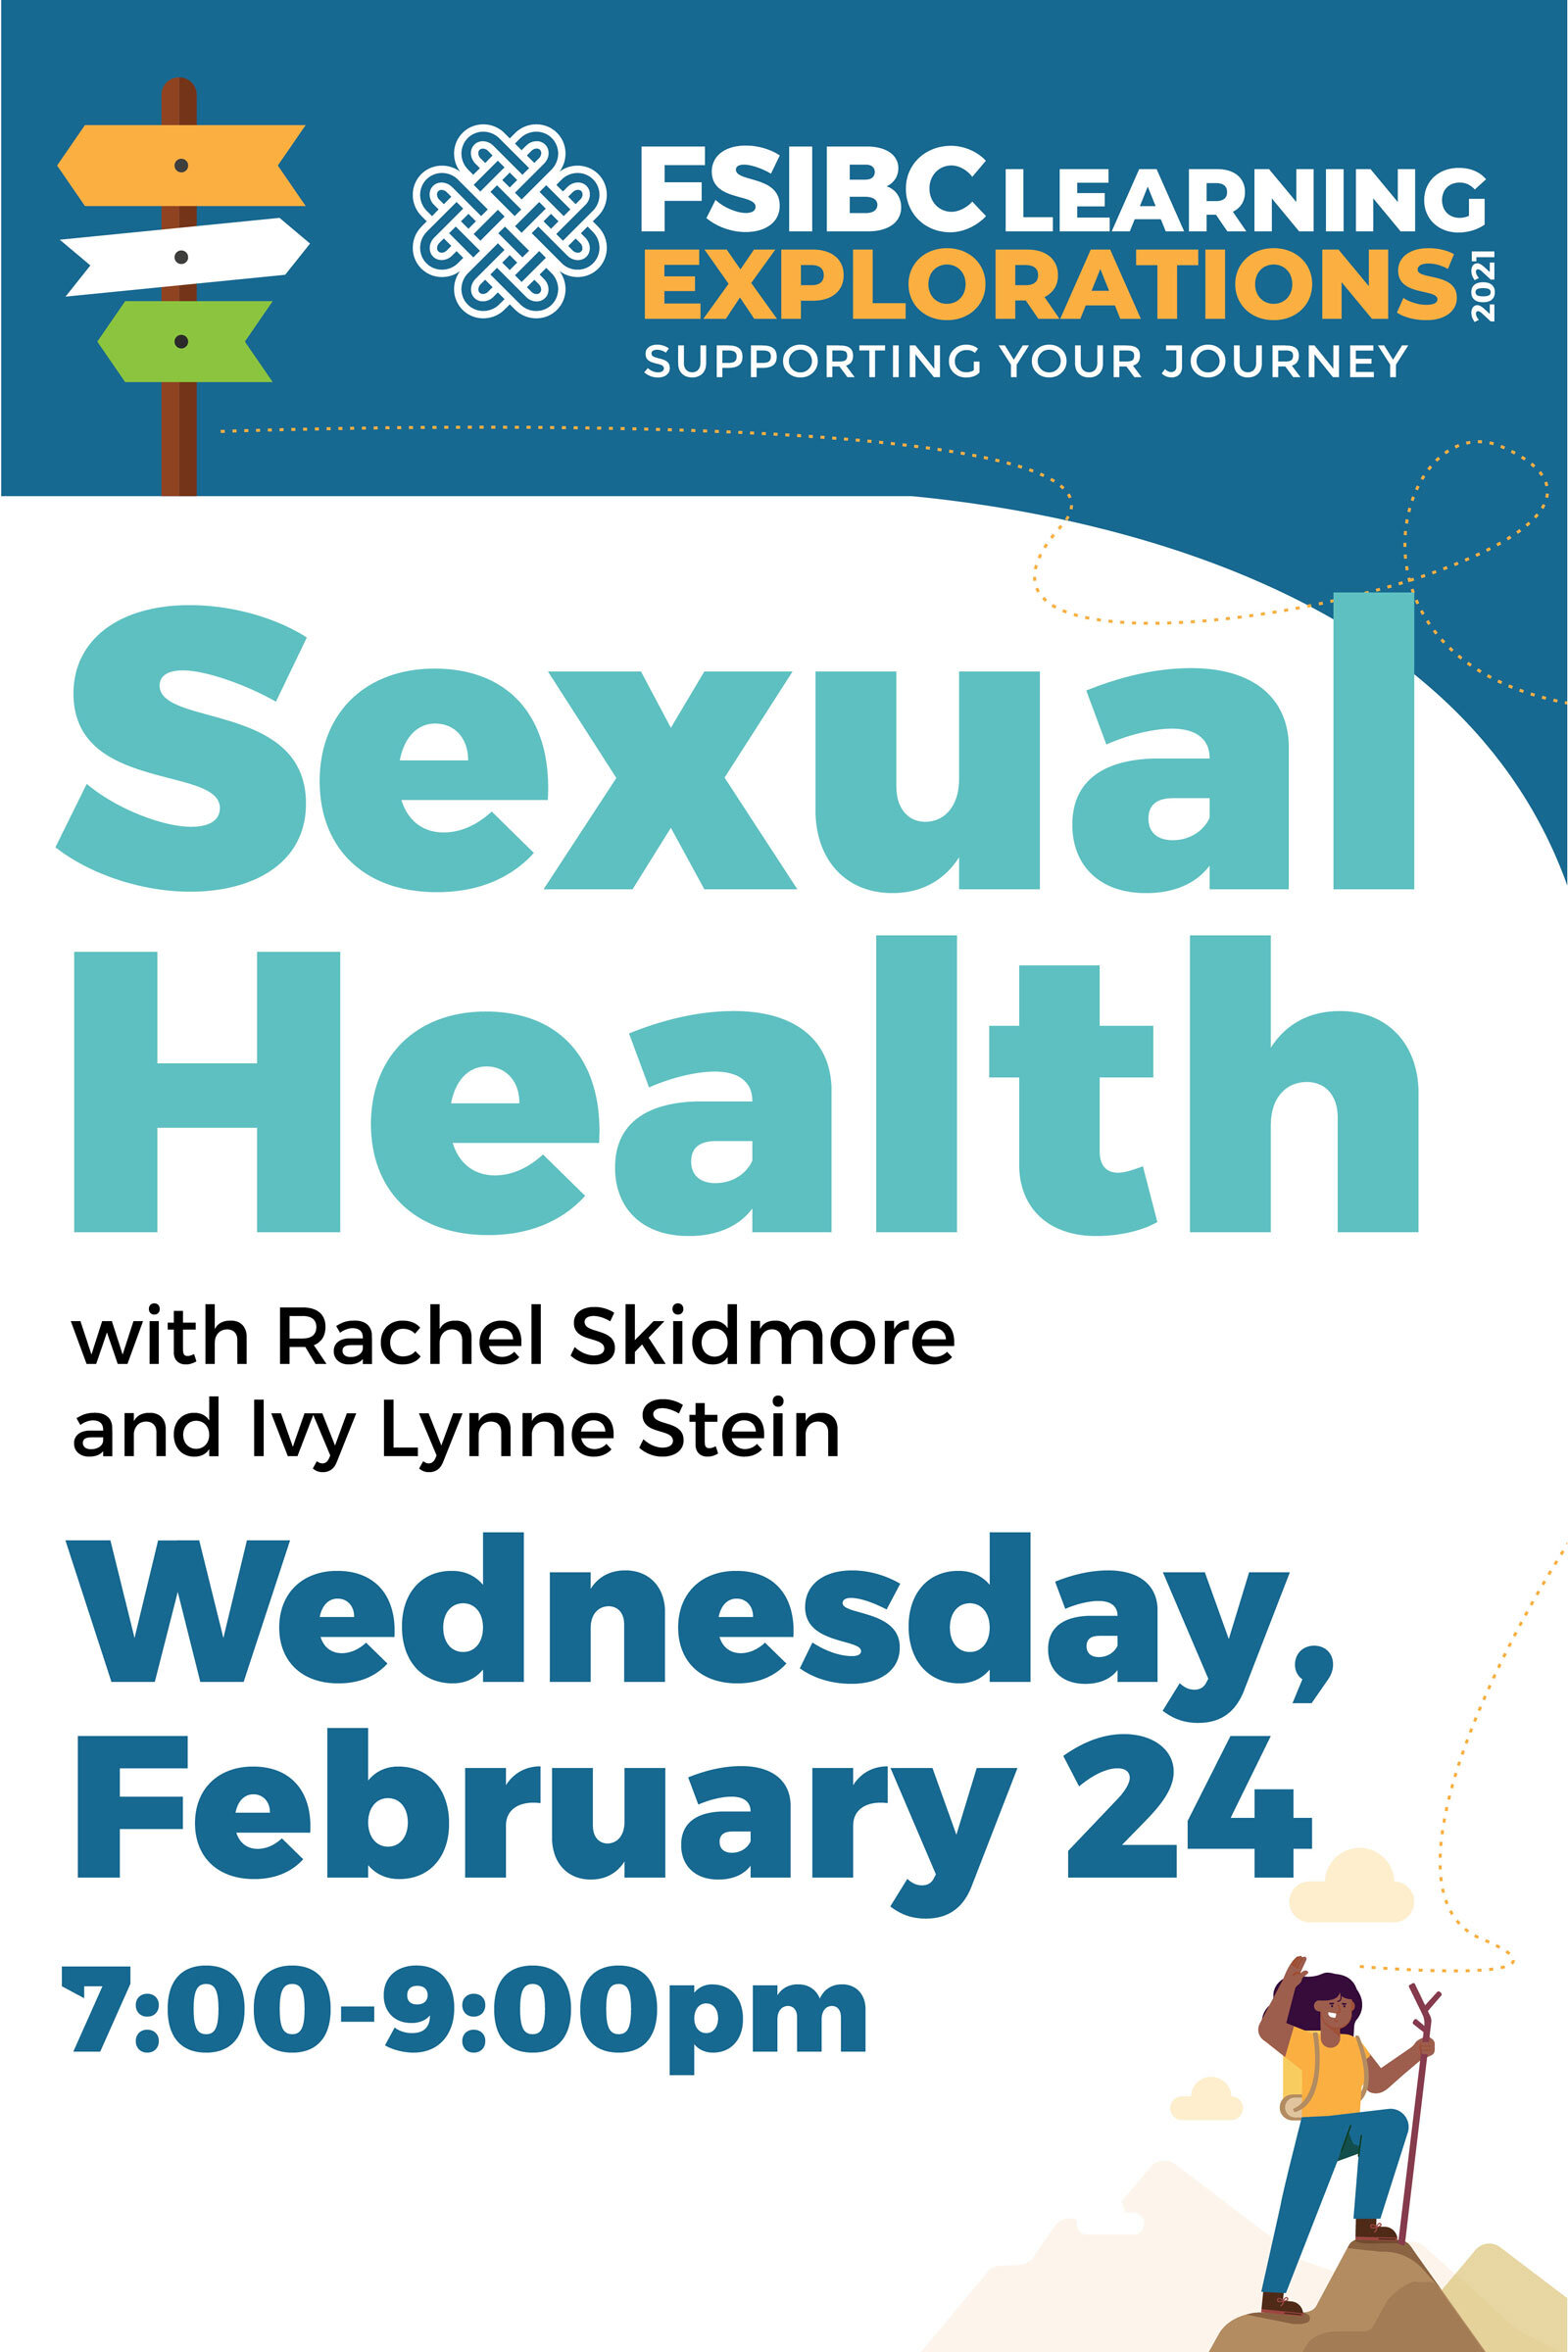 FSIBC Learning Explorations - Sexual Health